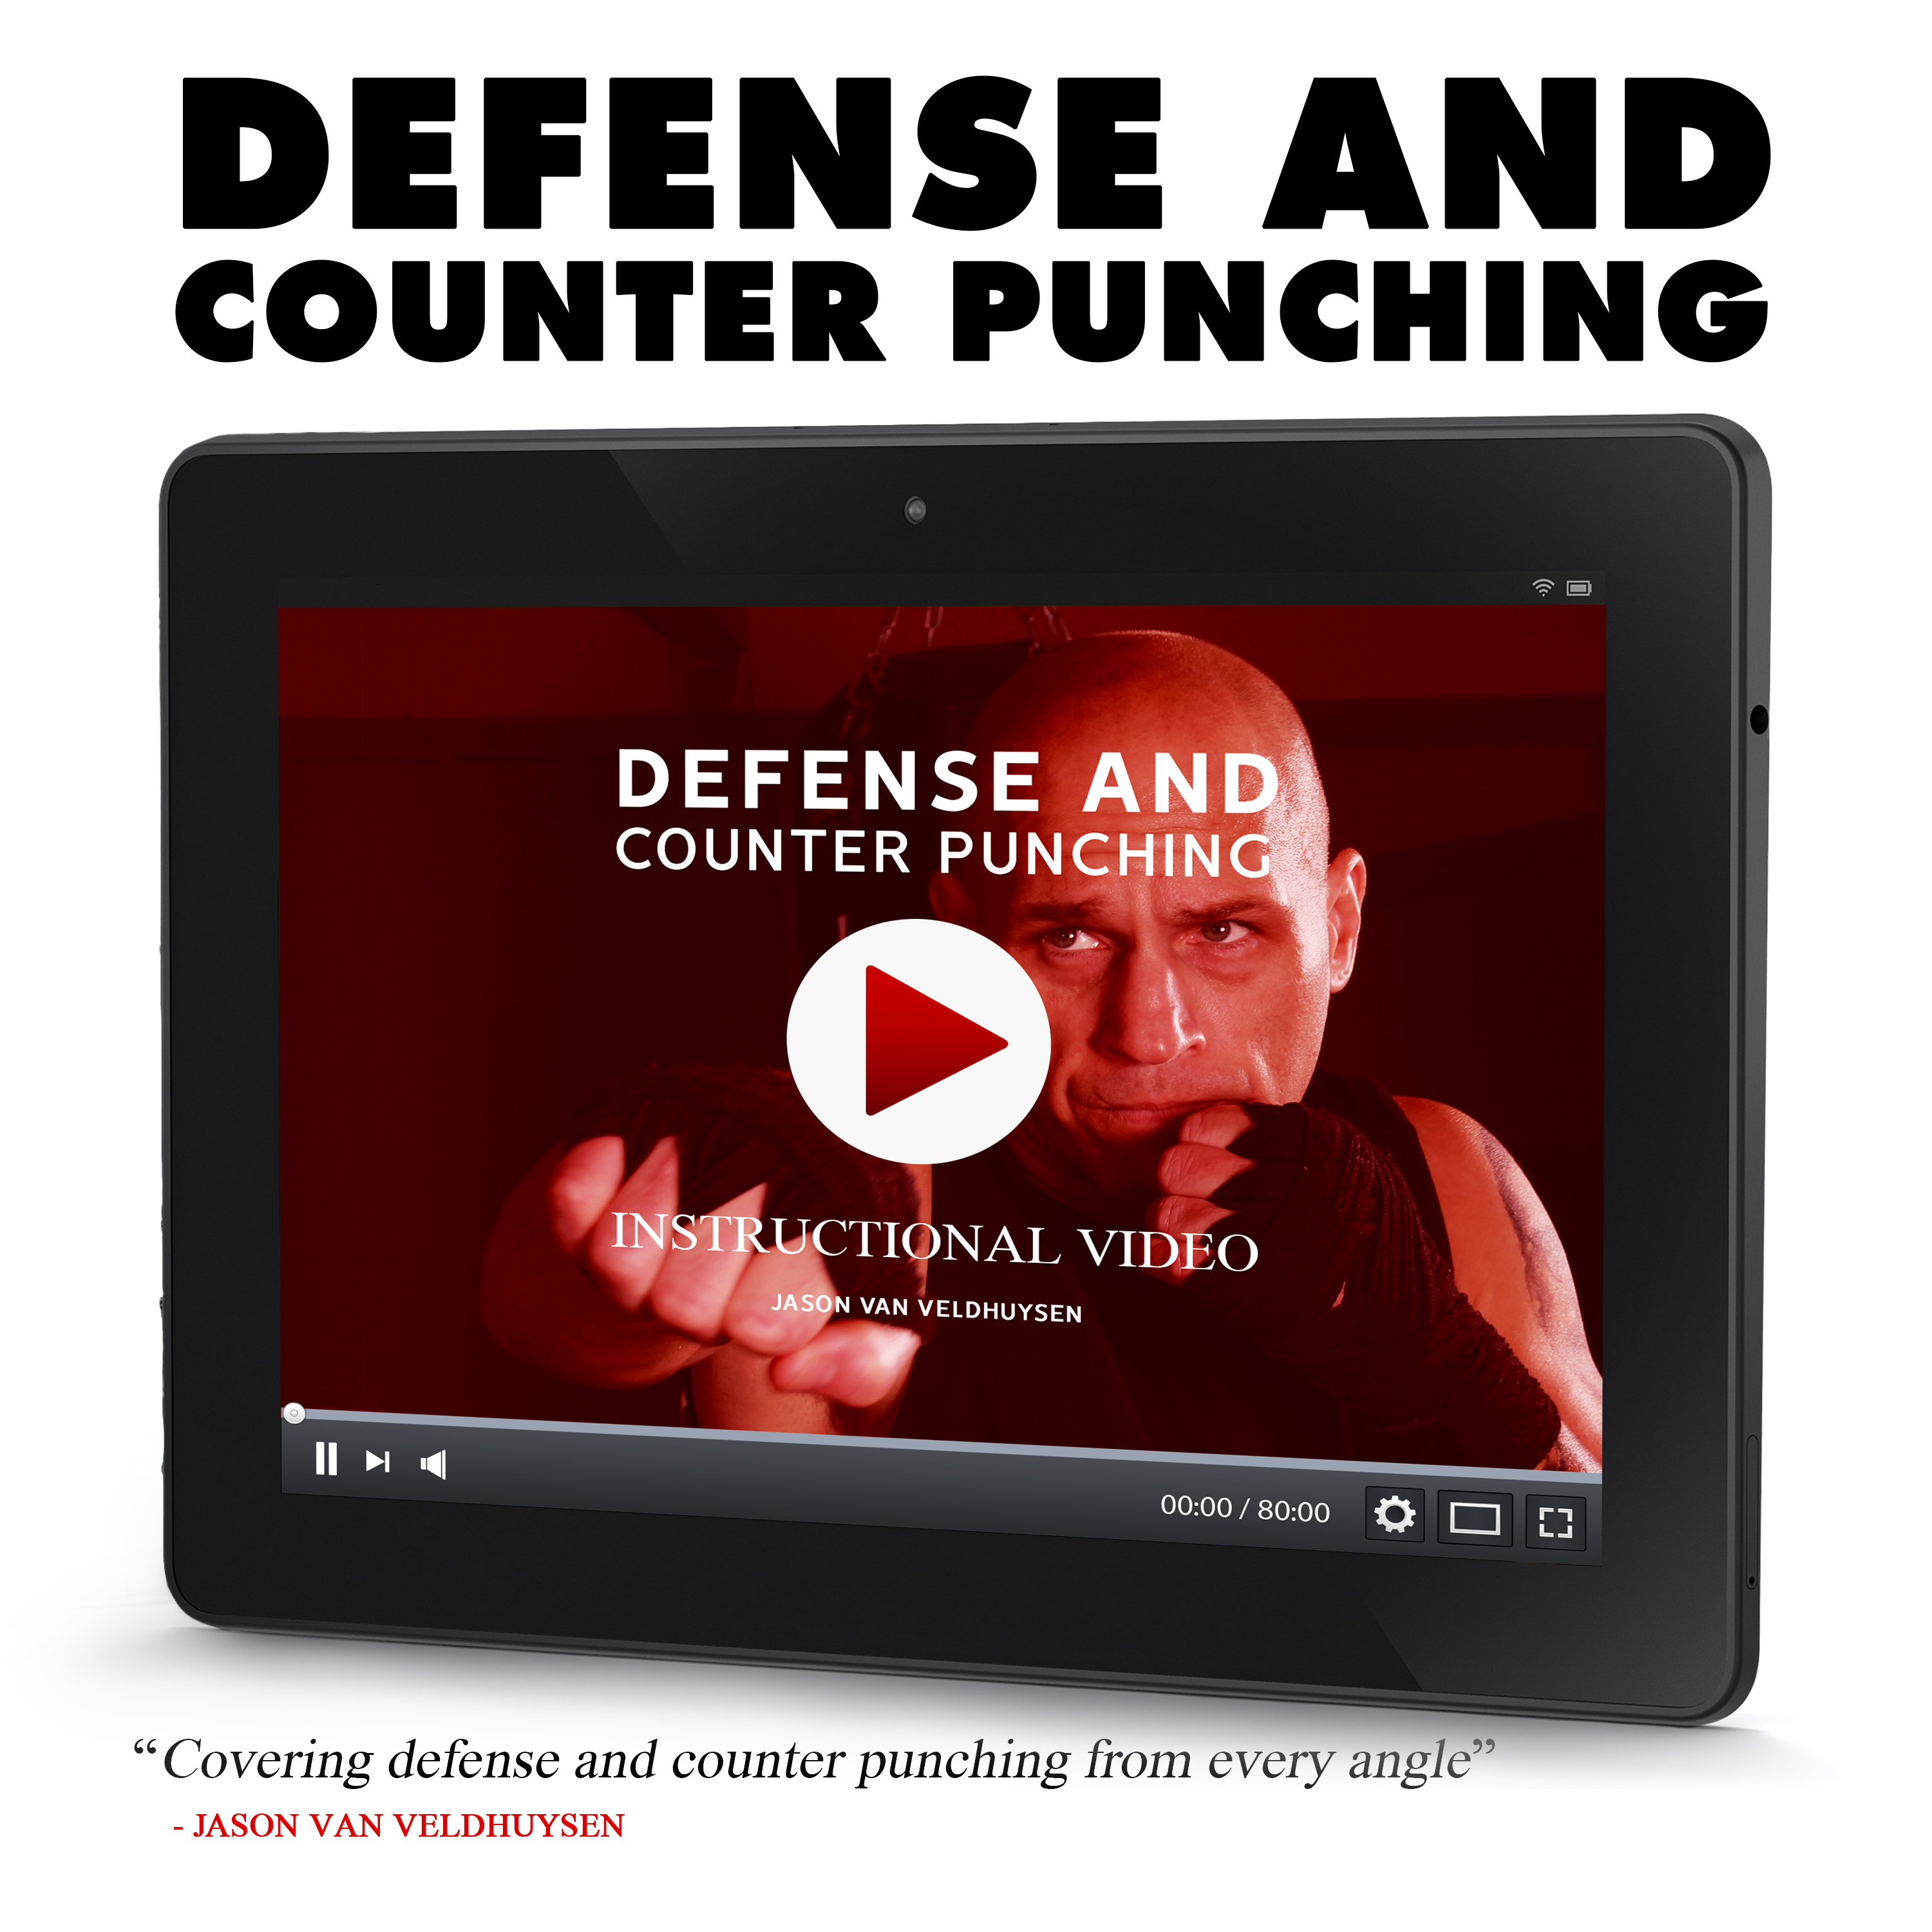 Defense and Counter Punching Instructional Video